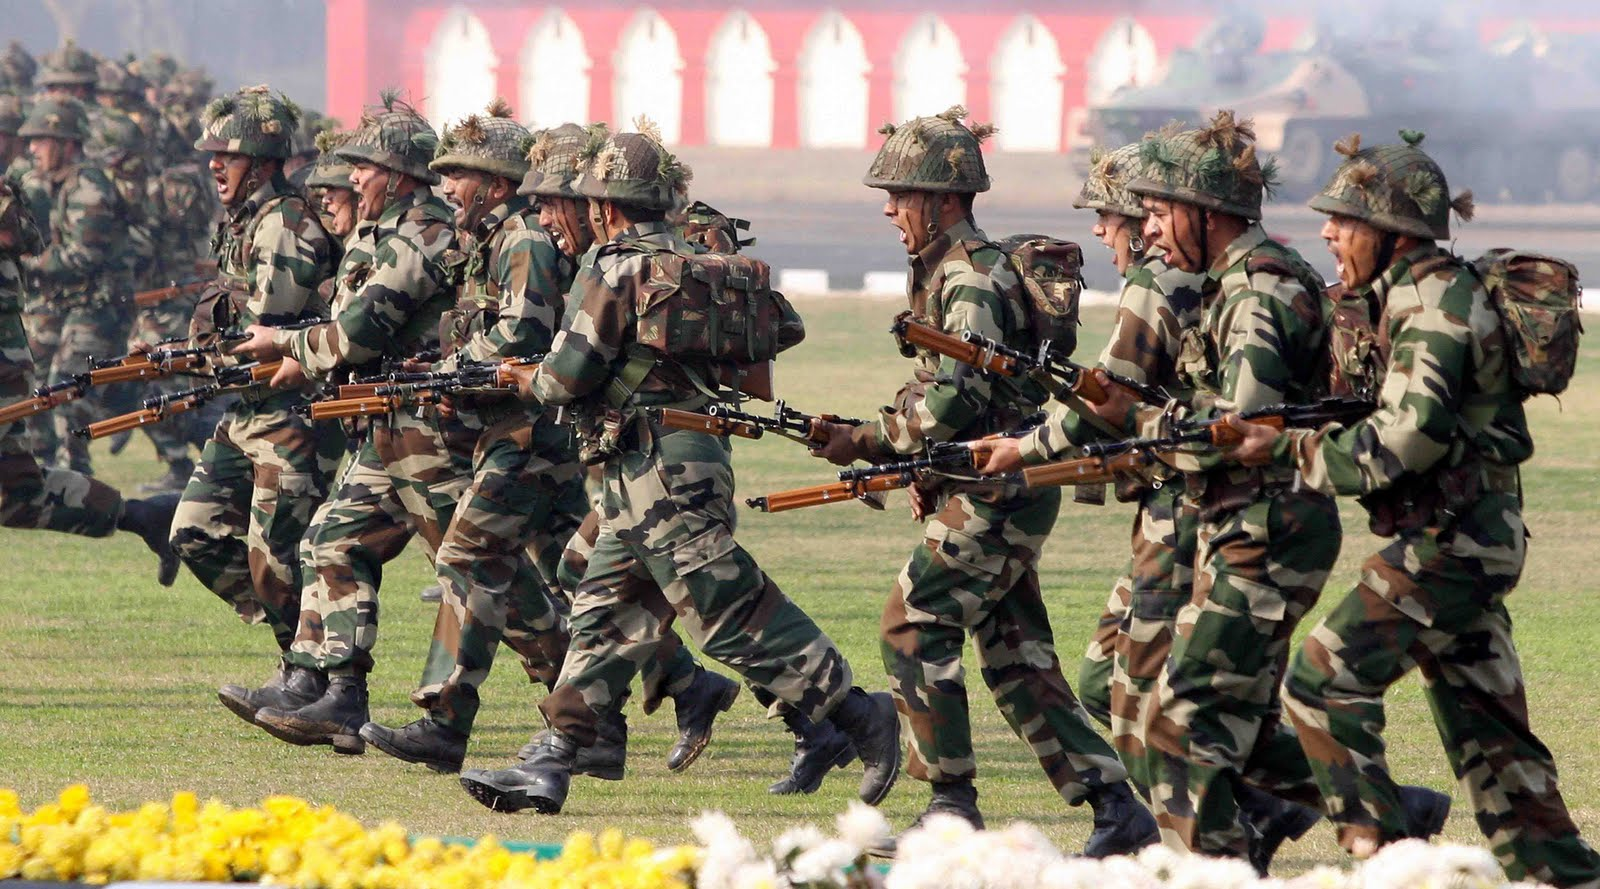 Pune to host the ever largest military drill next year